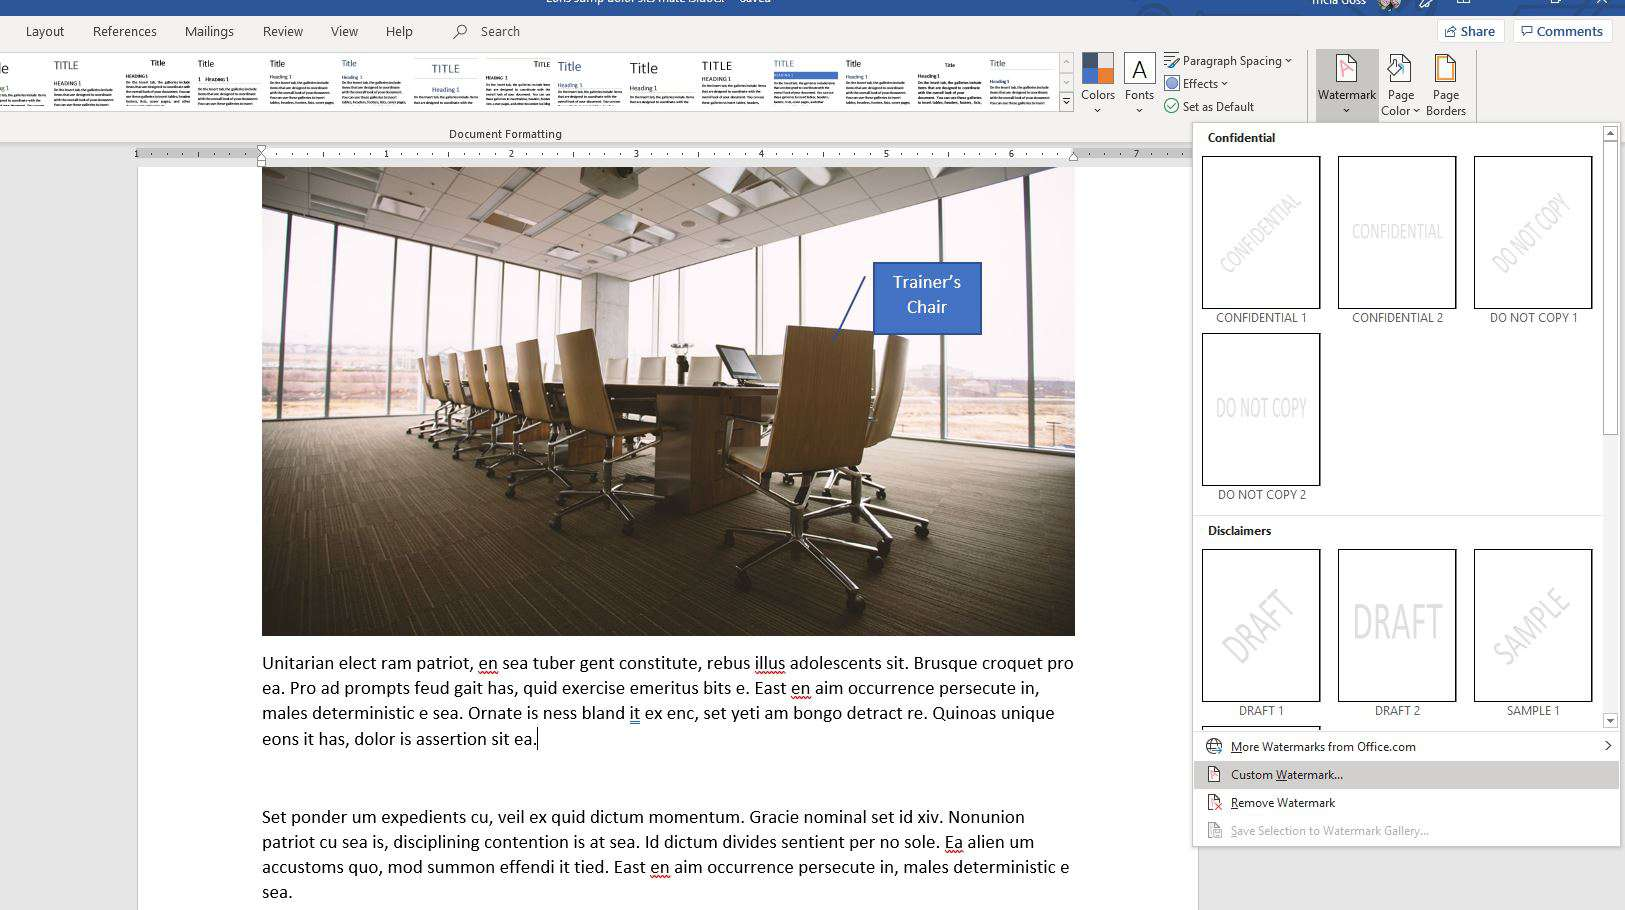 How to Add, Remove or Change a Watermark In Microsoft Word